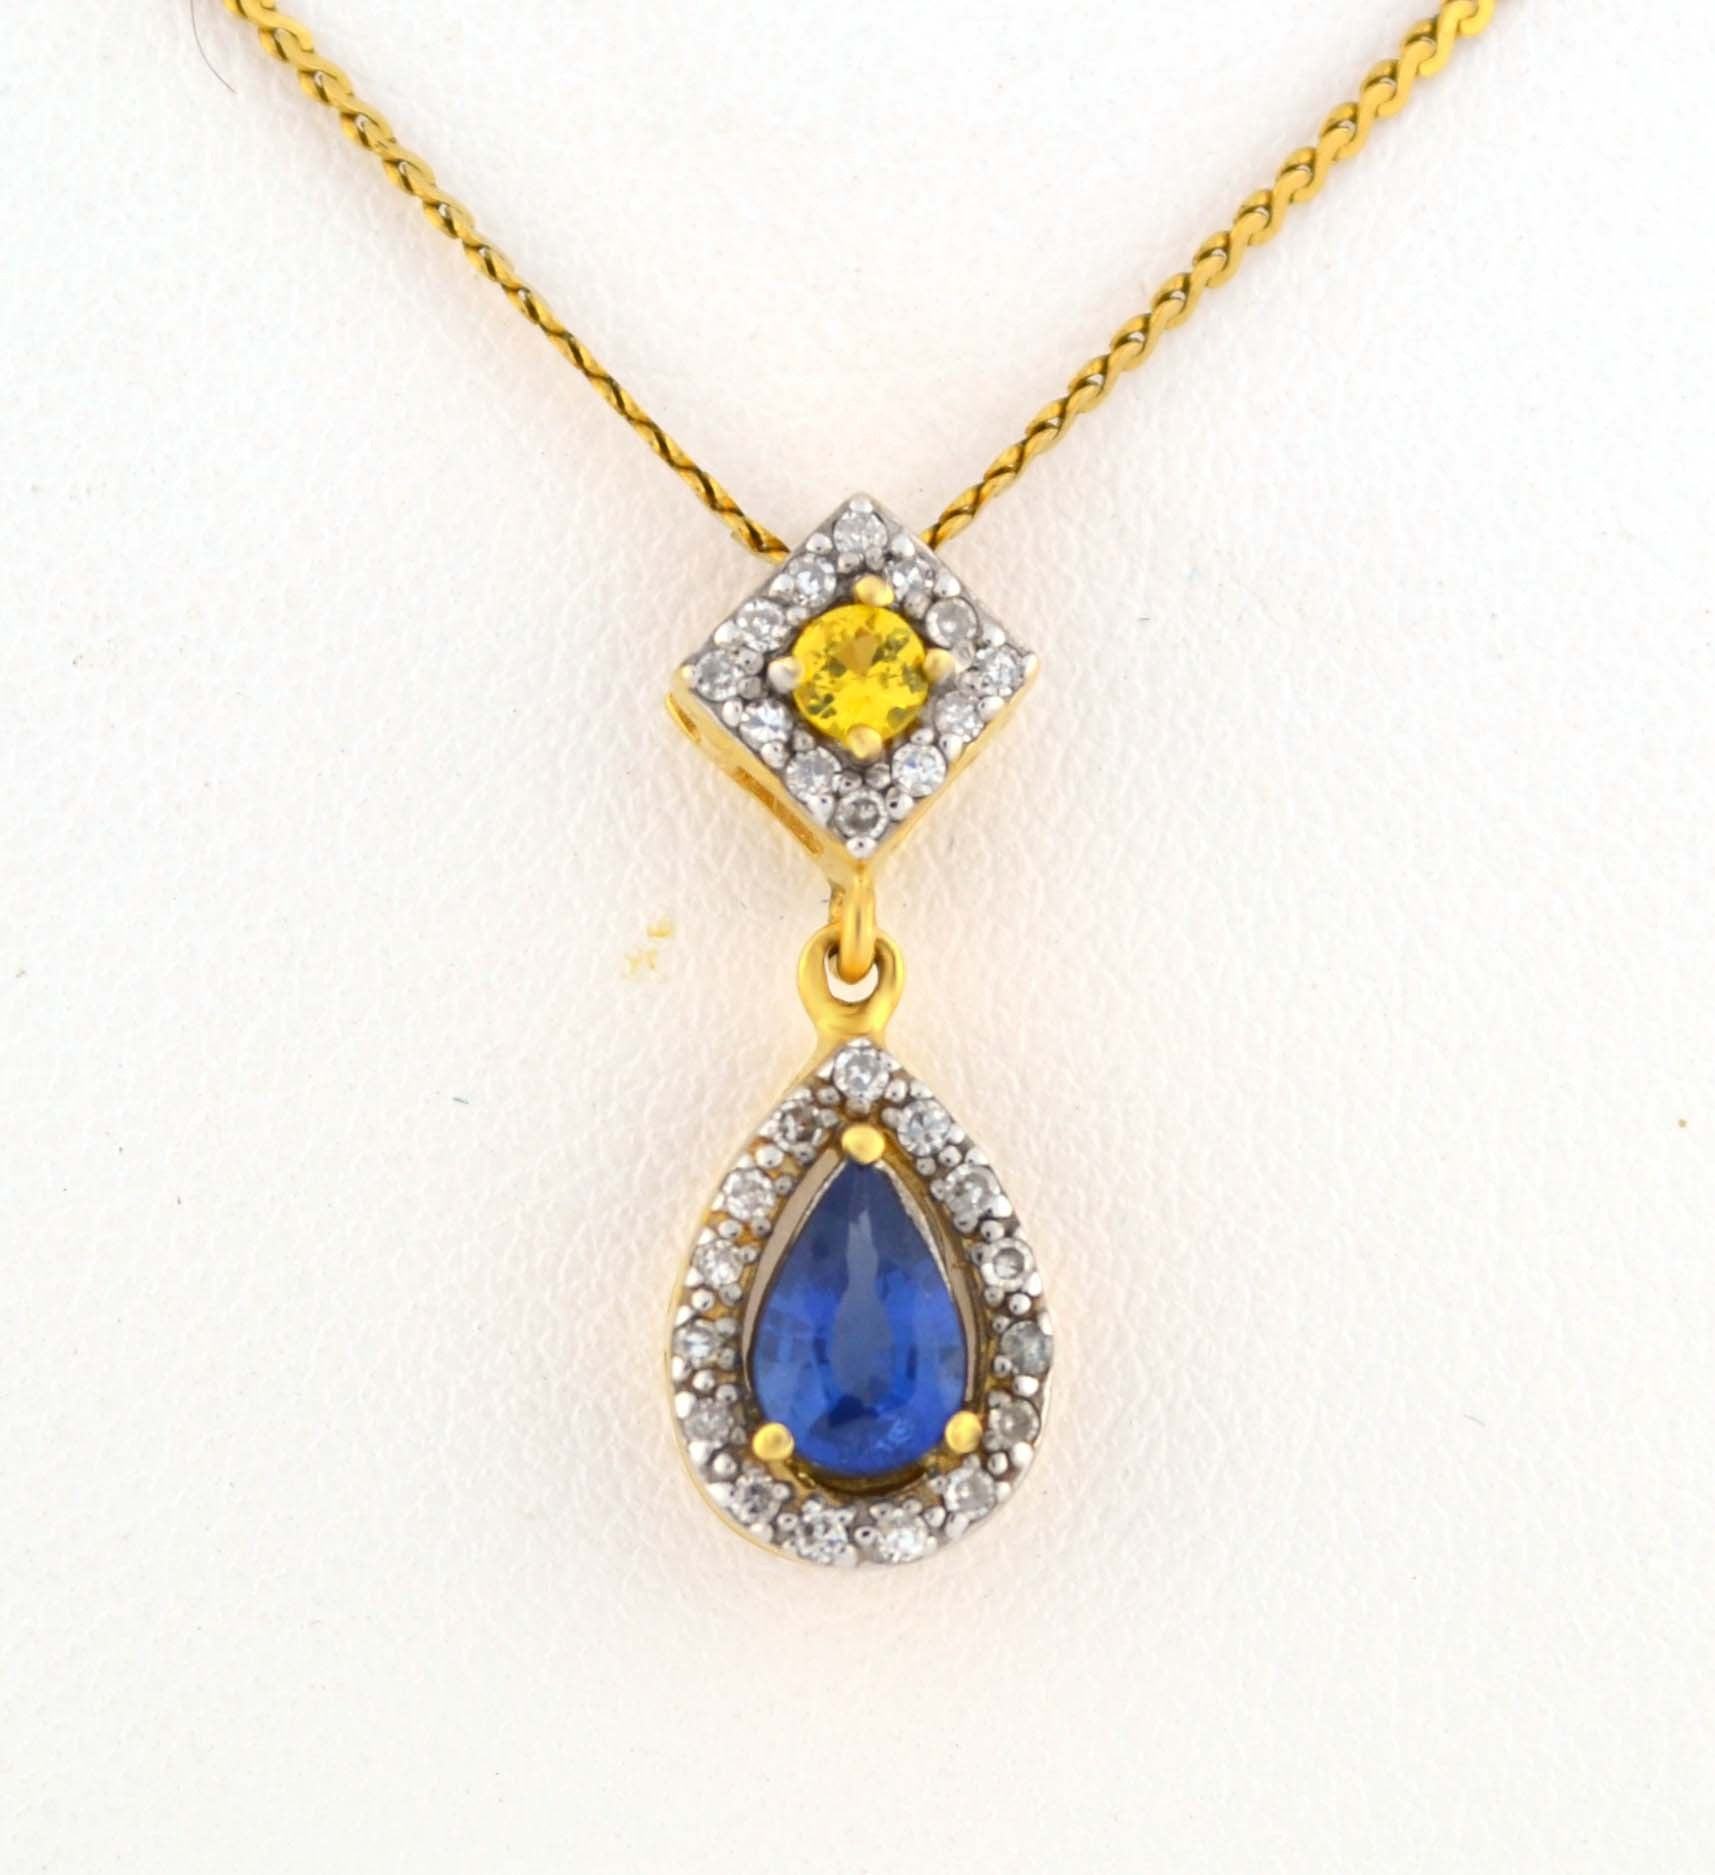 sapphire stone mallory shelter products pink drop pendant jewelry mini yellow necklace